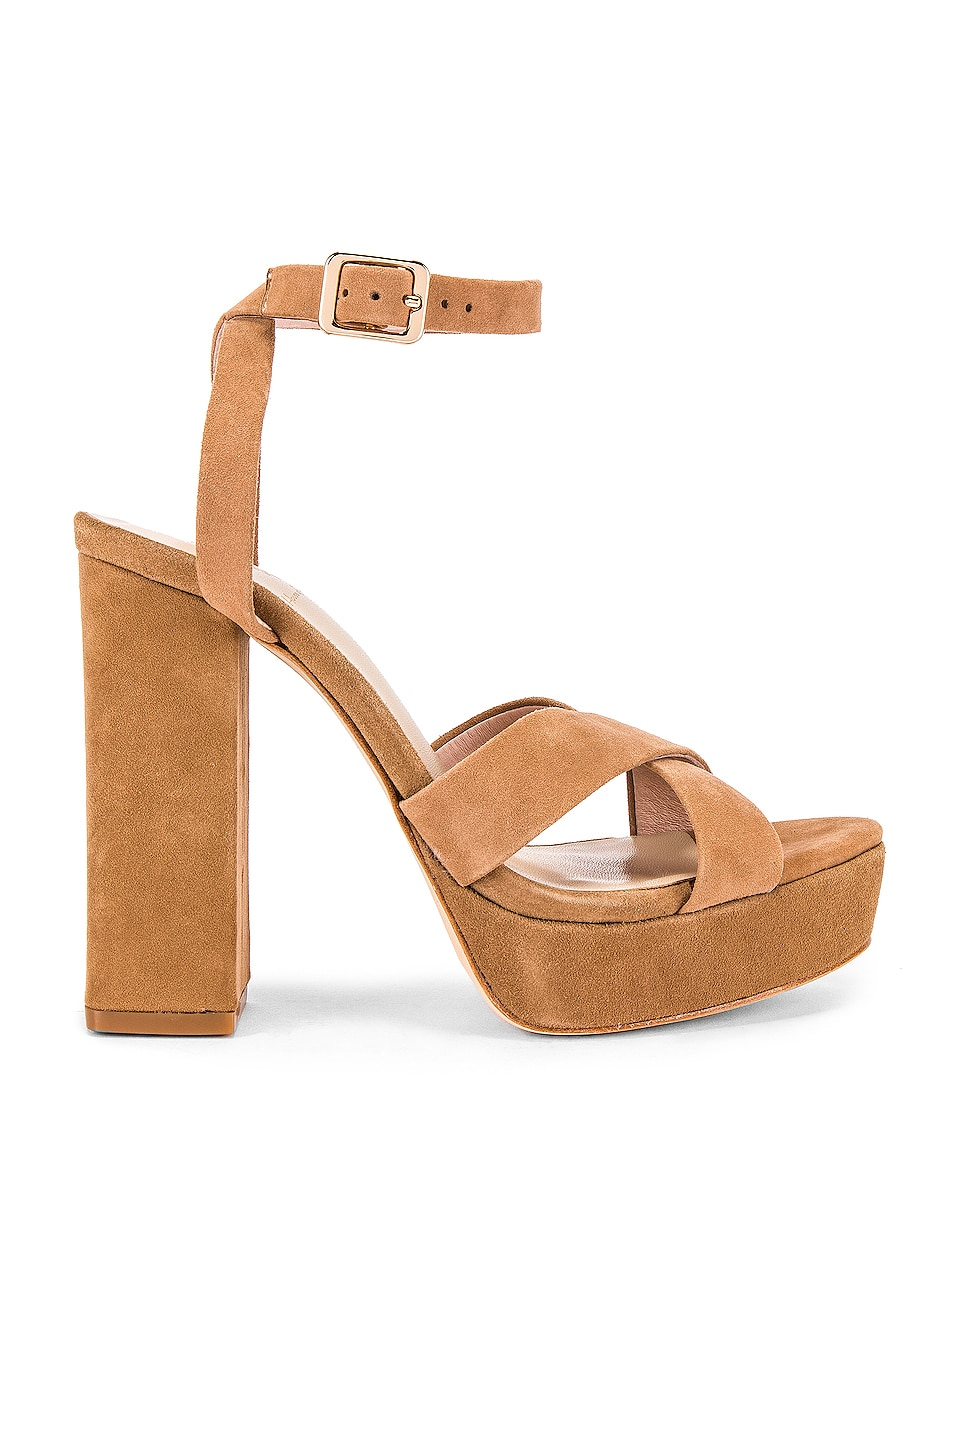 House of Harlow 1960 X REVOLVE Ari Heel in Tan